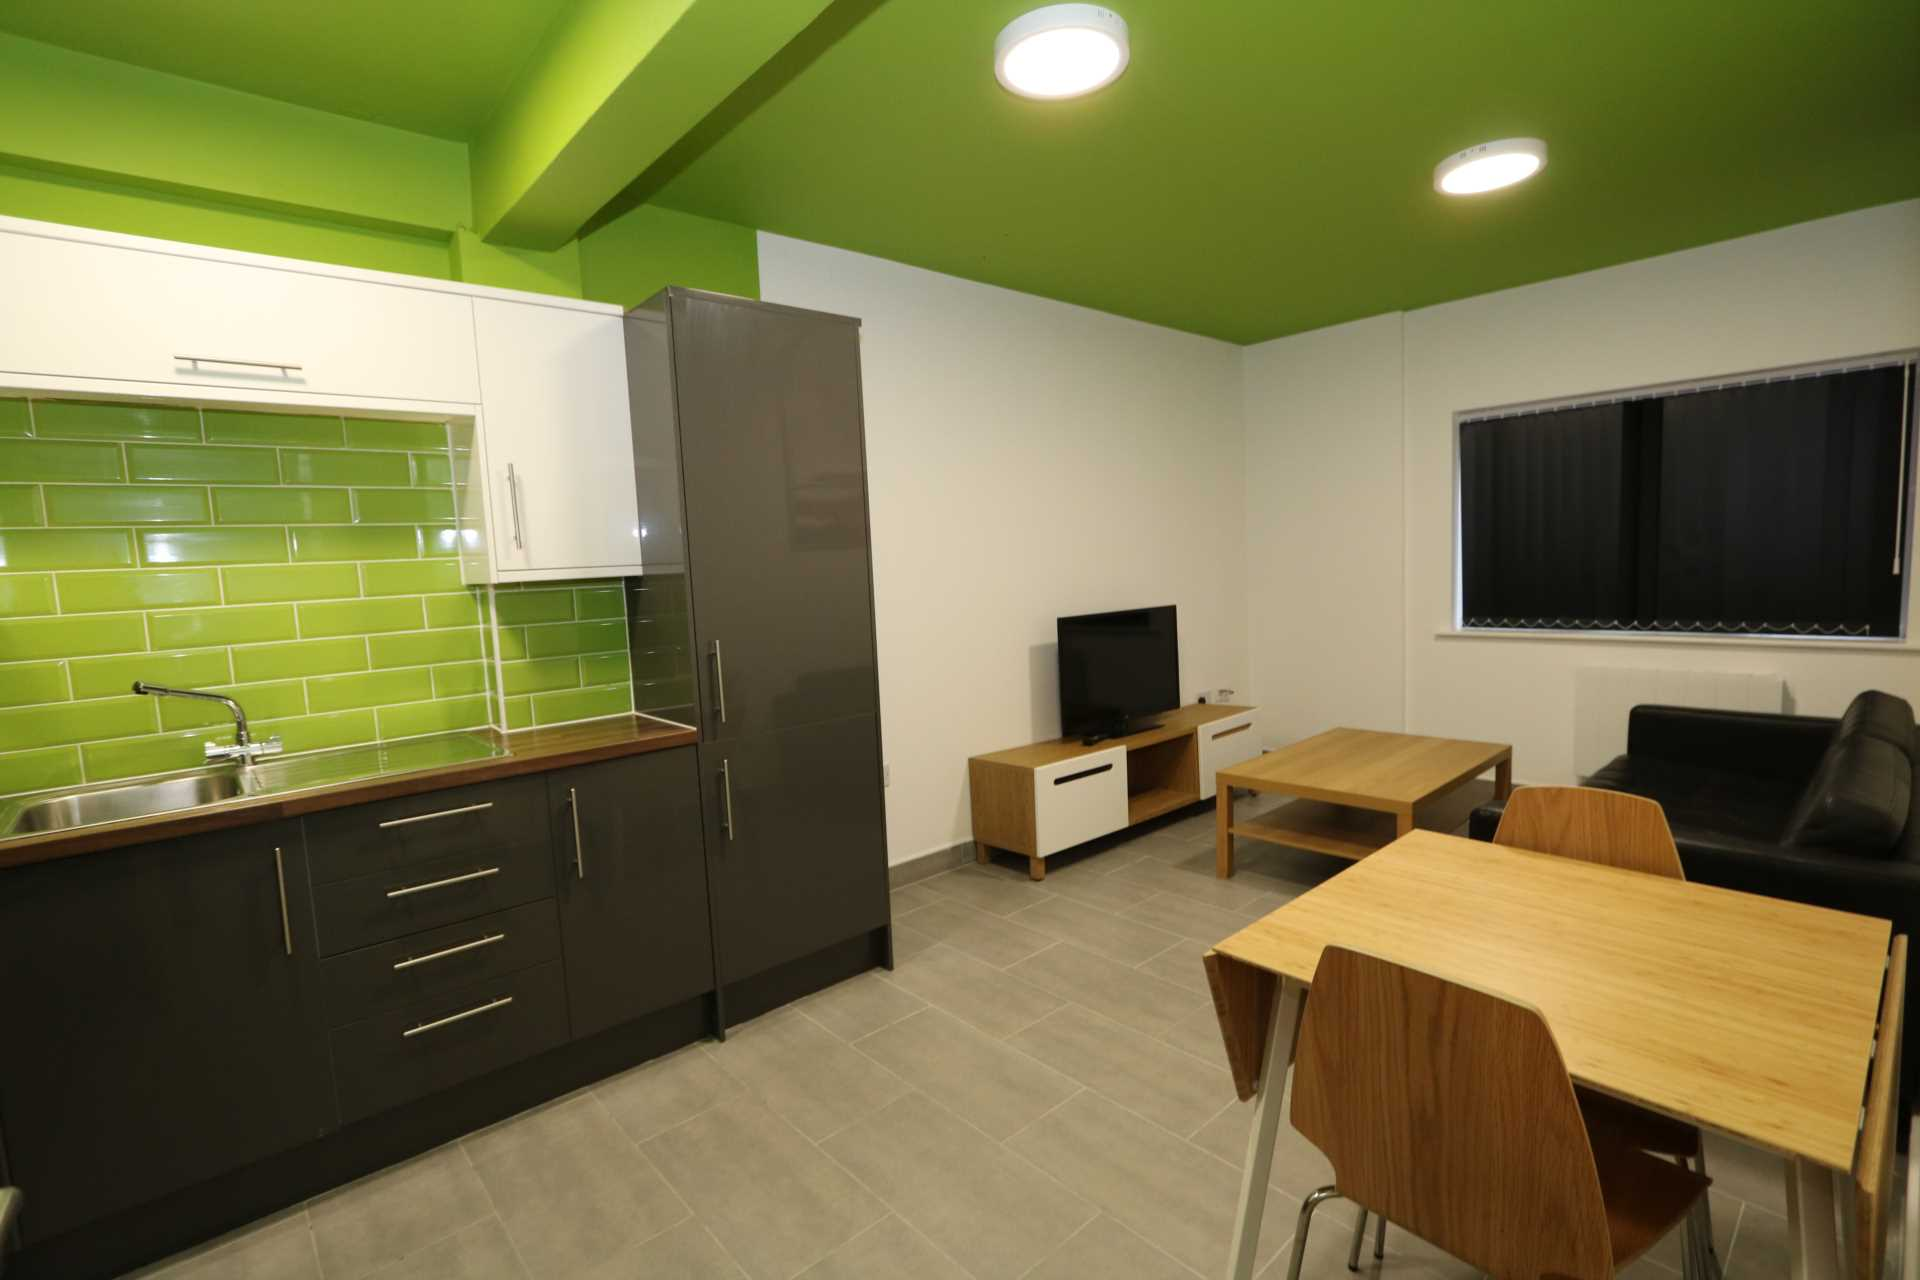 Room 9A Kings Court new development fully furnished student accommodation all bills included - NO FEES, Image 4